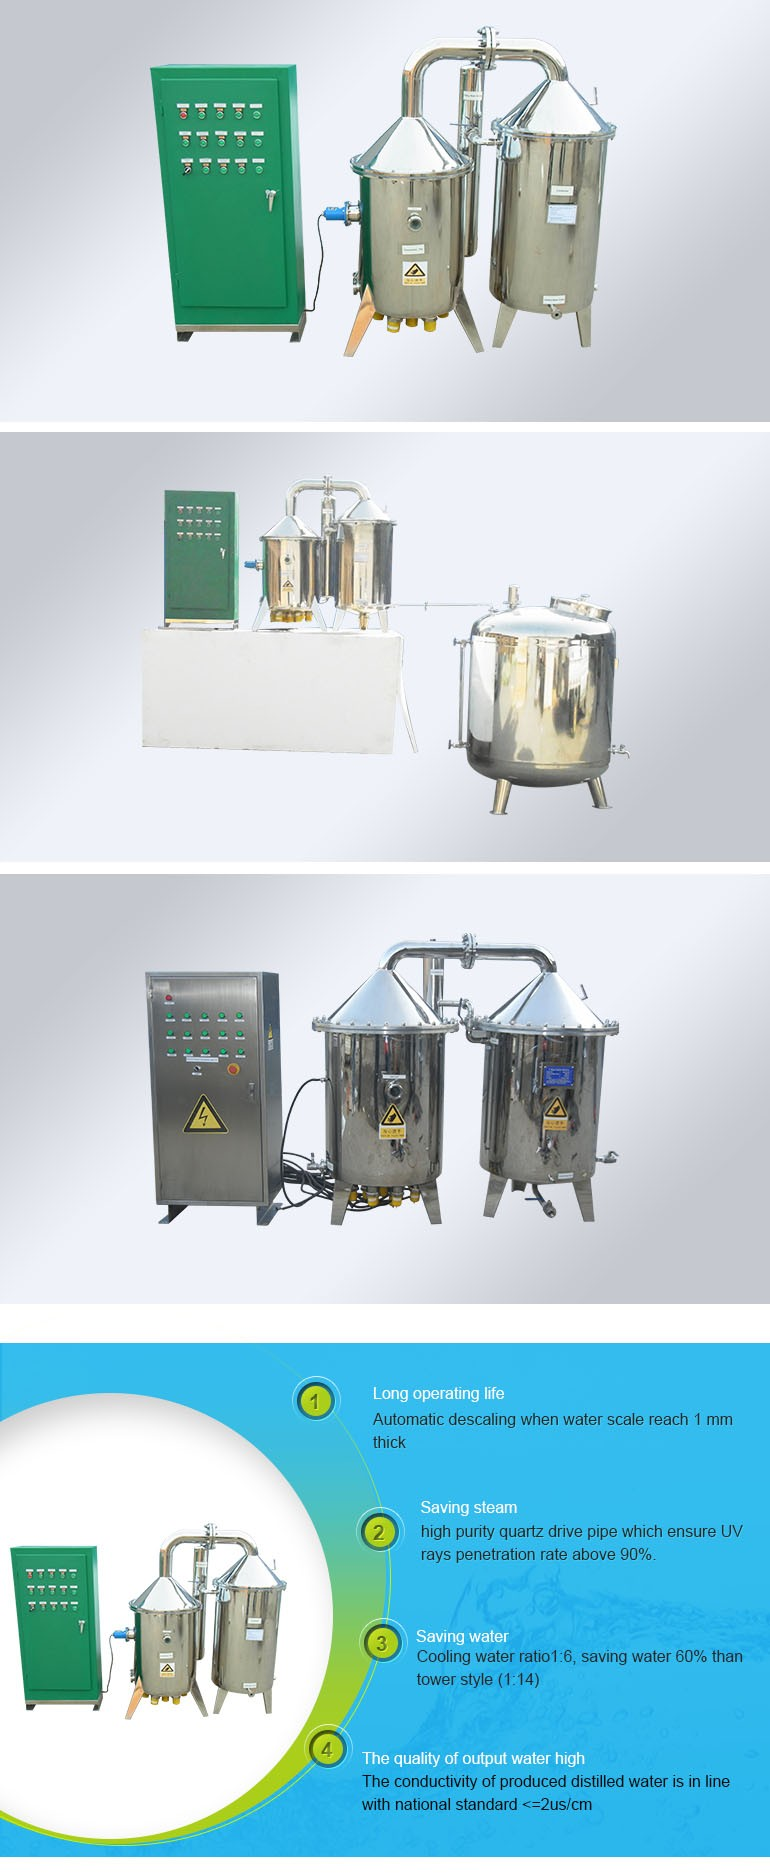 100 l/h Capacity Water Distiller